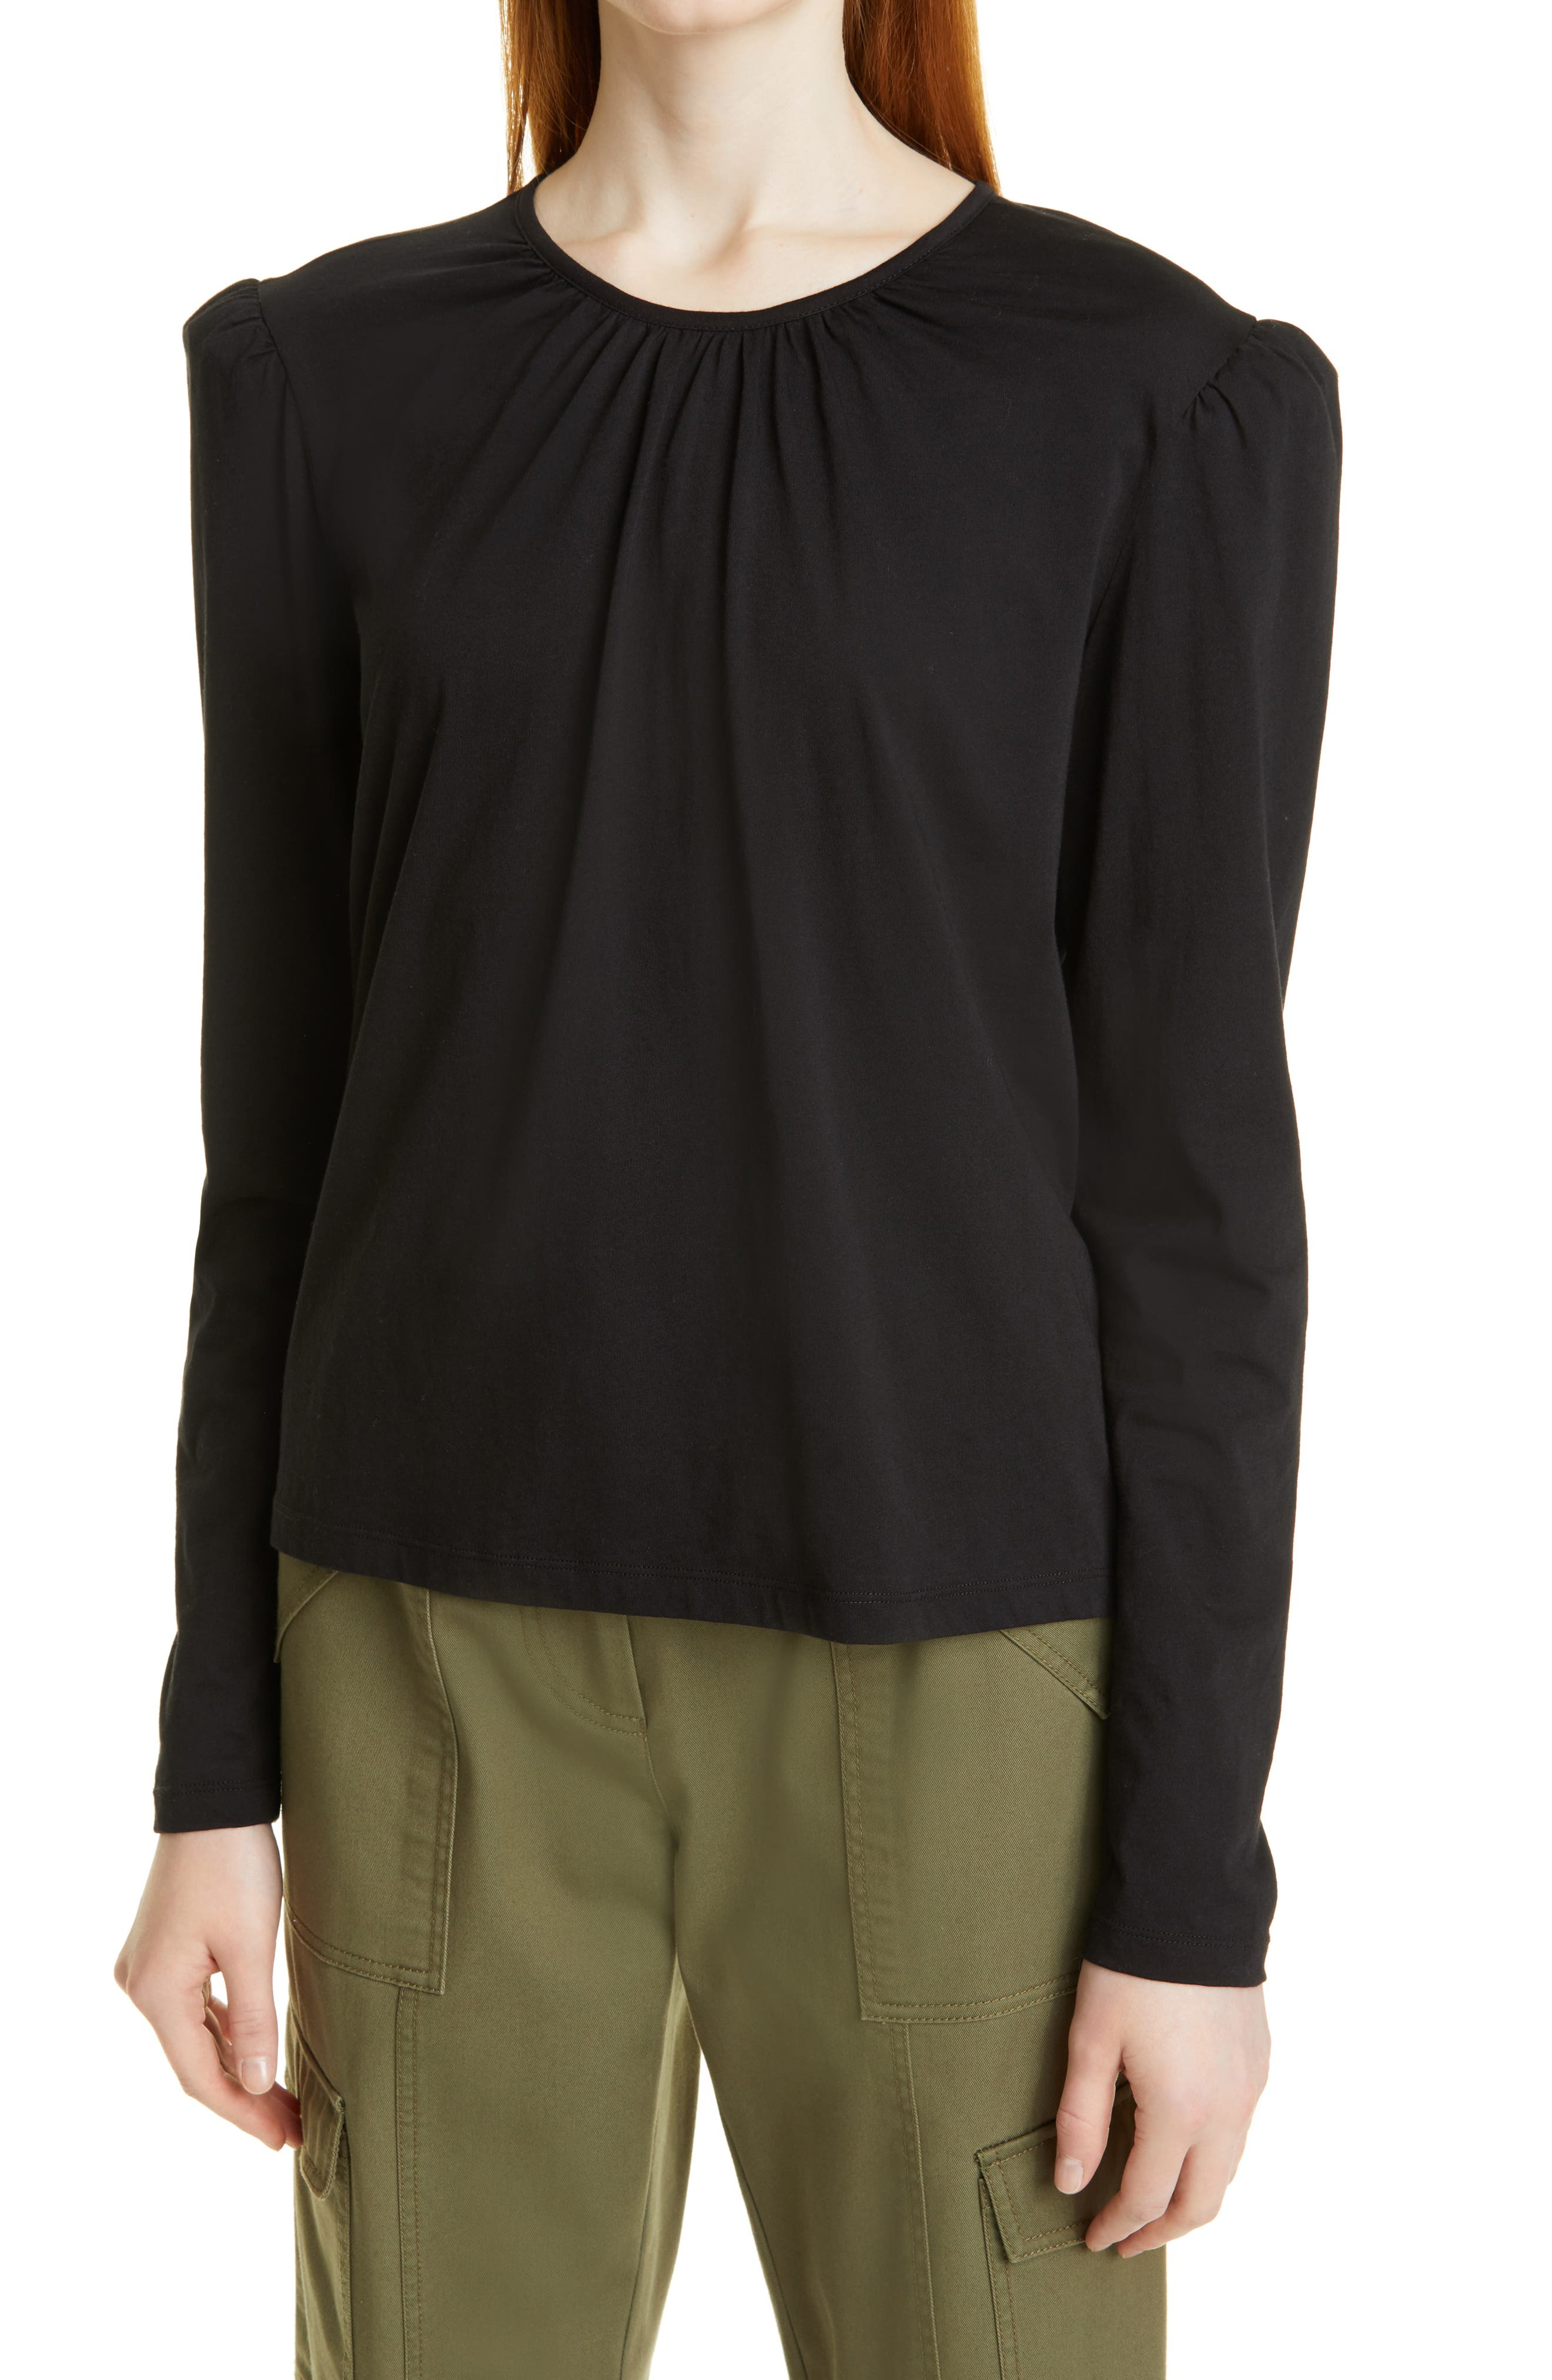 Kary Puff Shoulder Long Sleeve Cotton Knit Top